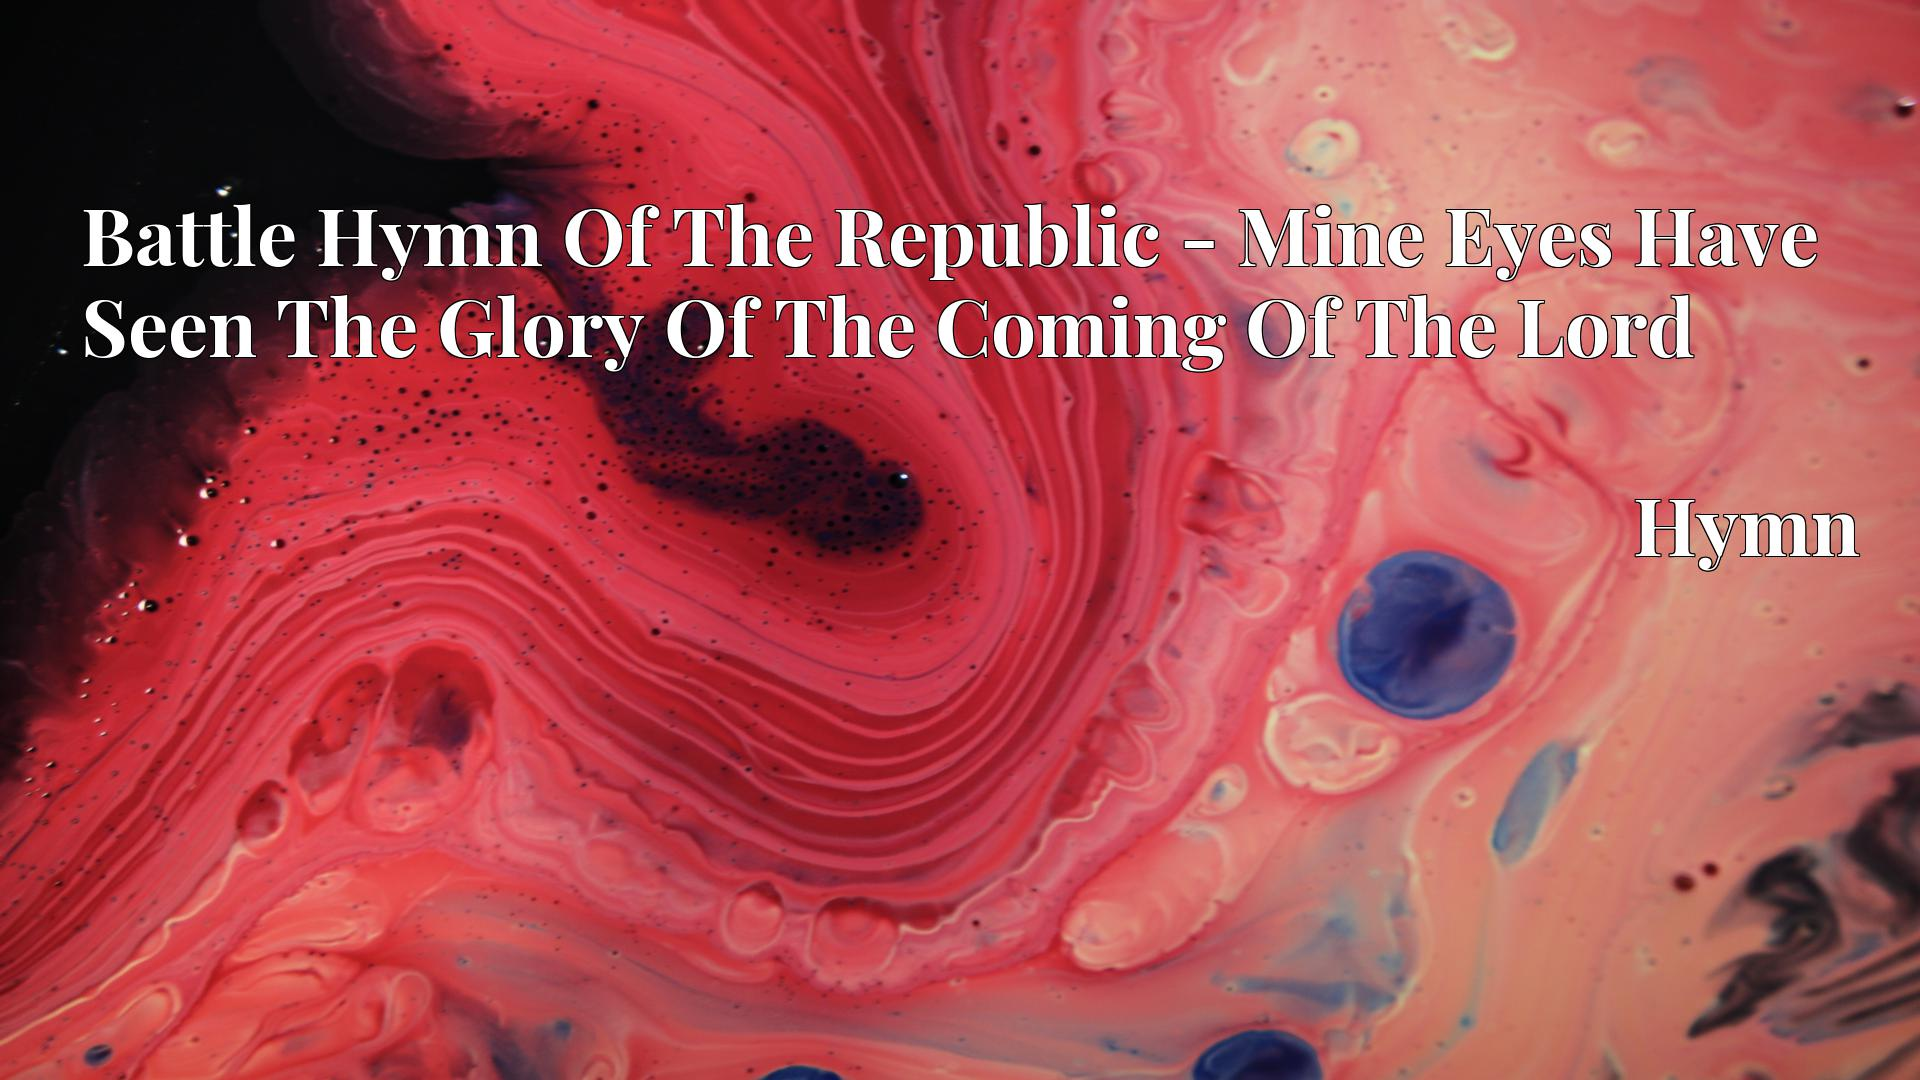 Battle Hymn Of The Republic - Mine Eyes Have Seen The Glory Of The Coming Of The Lord - Hymn